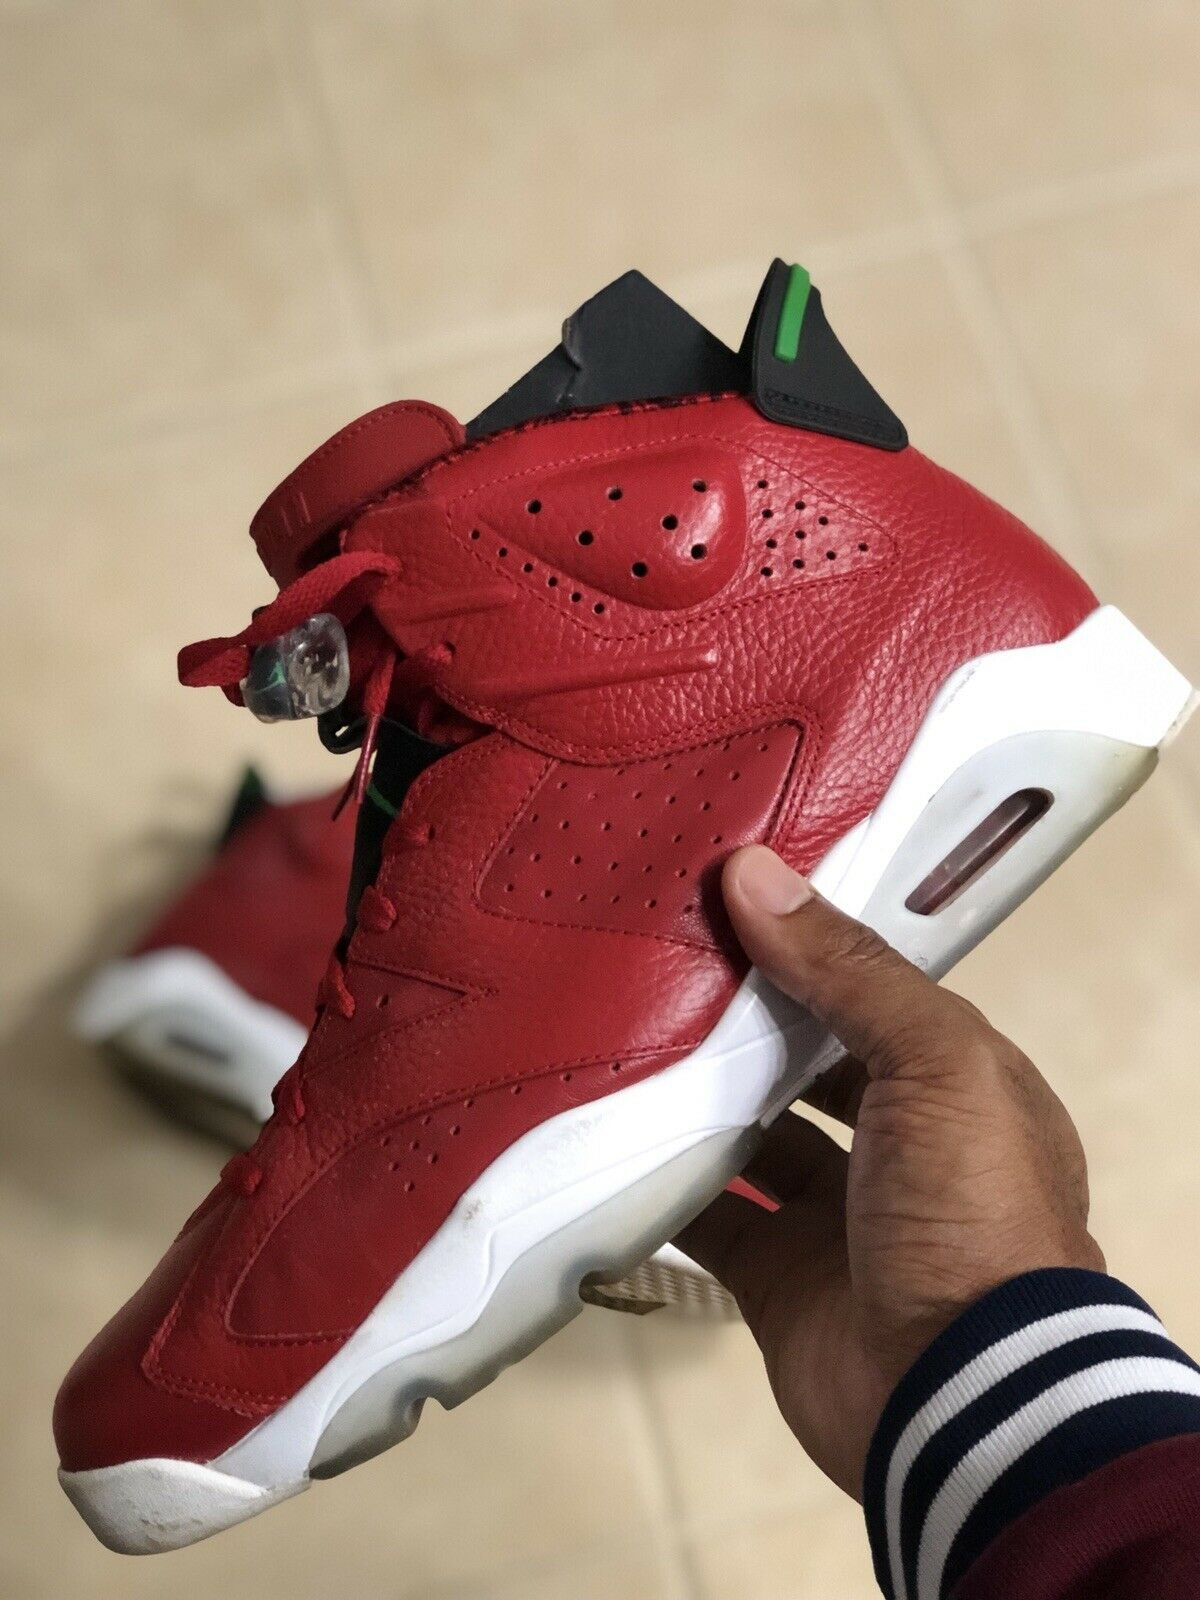 Size 13 Nike Air Jordan 6 XI Retro Spiz'ike History of Jordan Red PreOwned Used